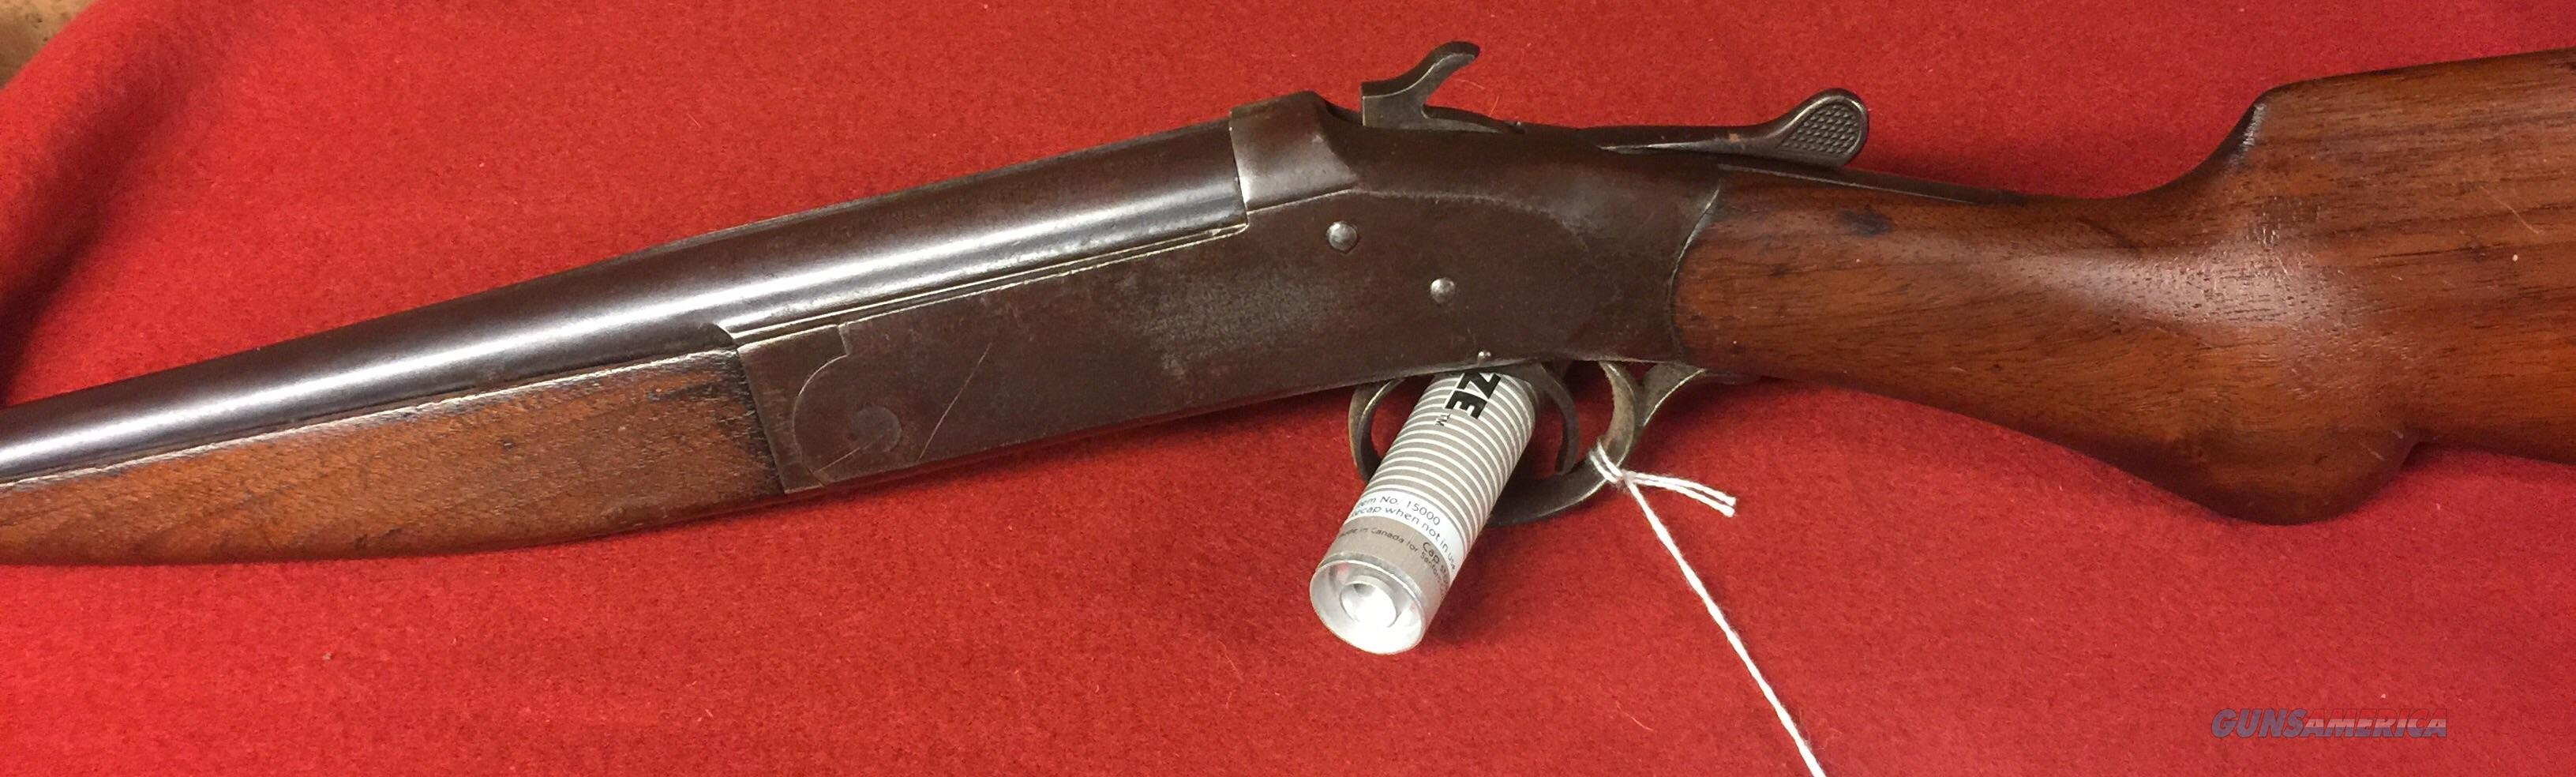 IVER JOHNSON CHAMPION   IN THE 44 SHOTSHELL  Guns > Shotguns > Iver Johnson Shotguns